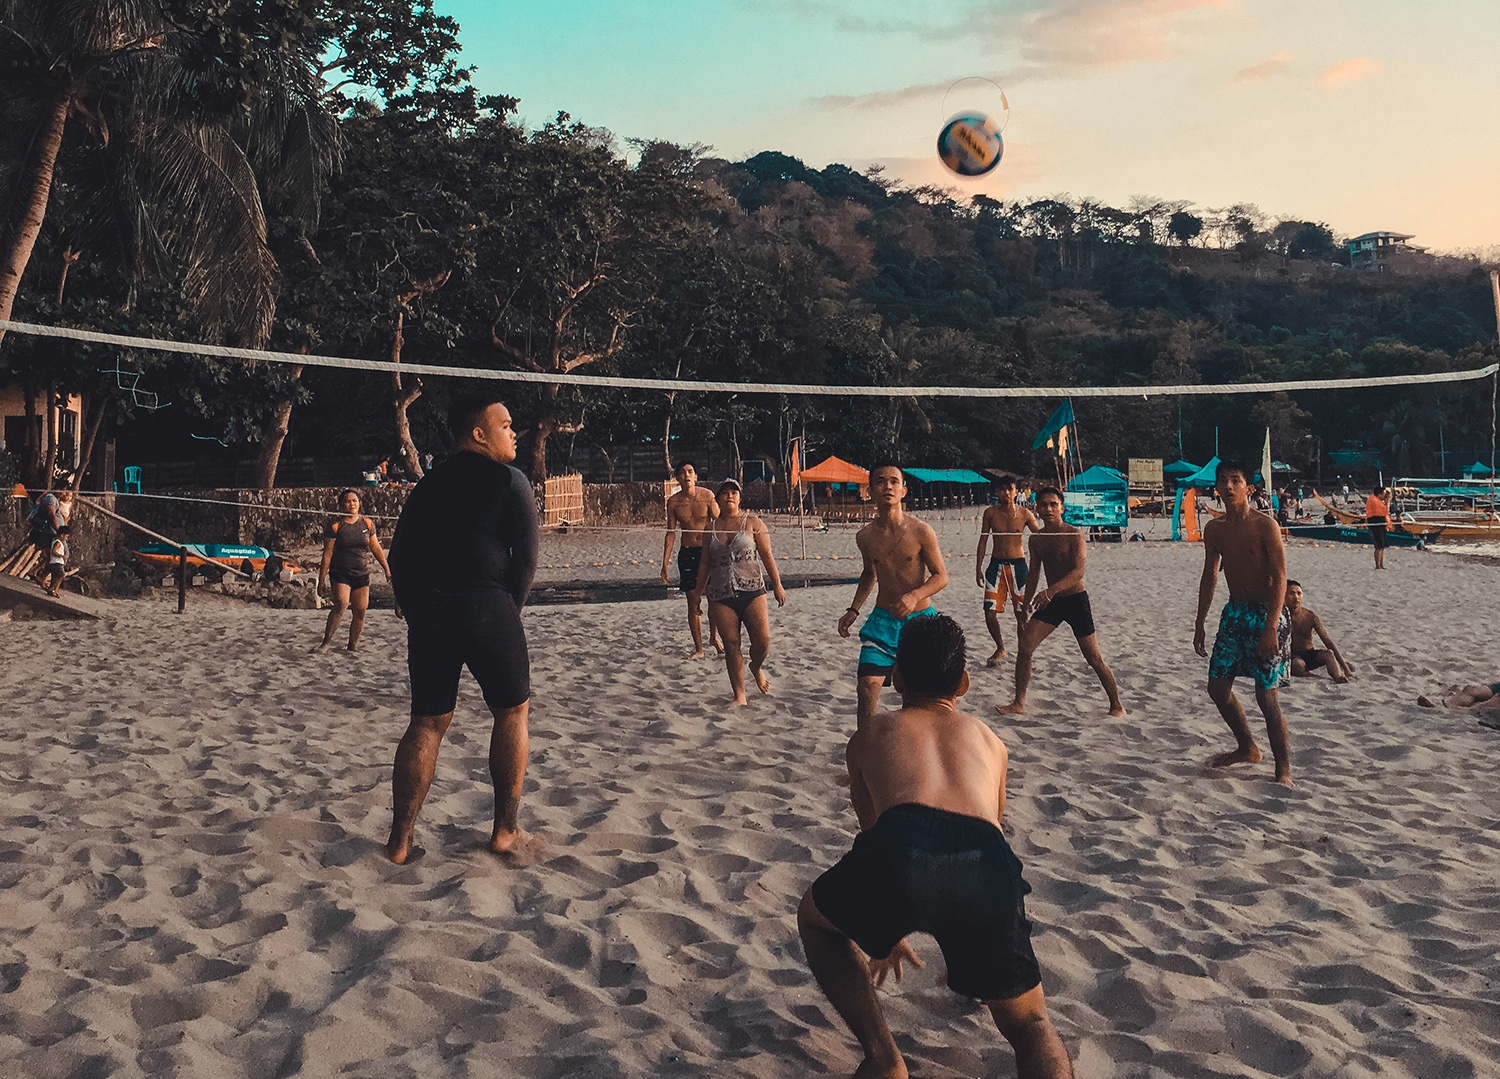 The kids can get their sports on this week at Alamitos Beach.